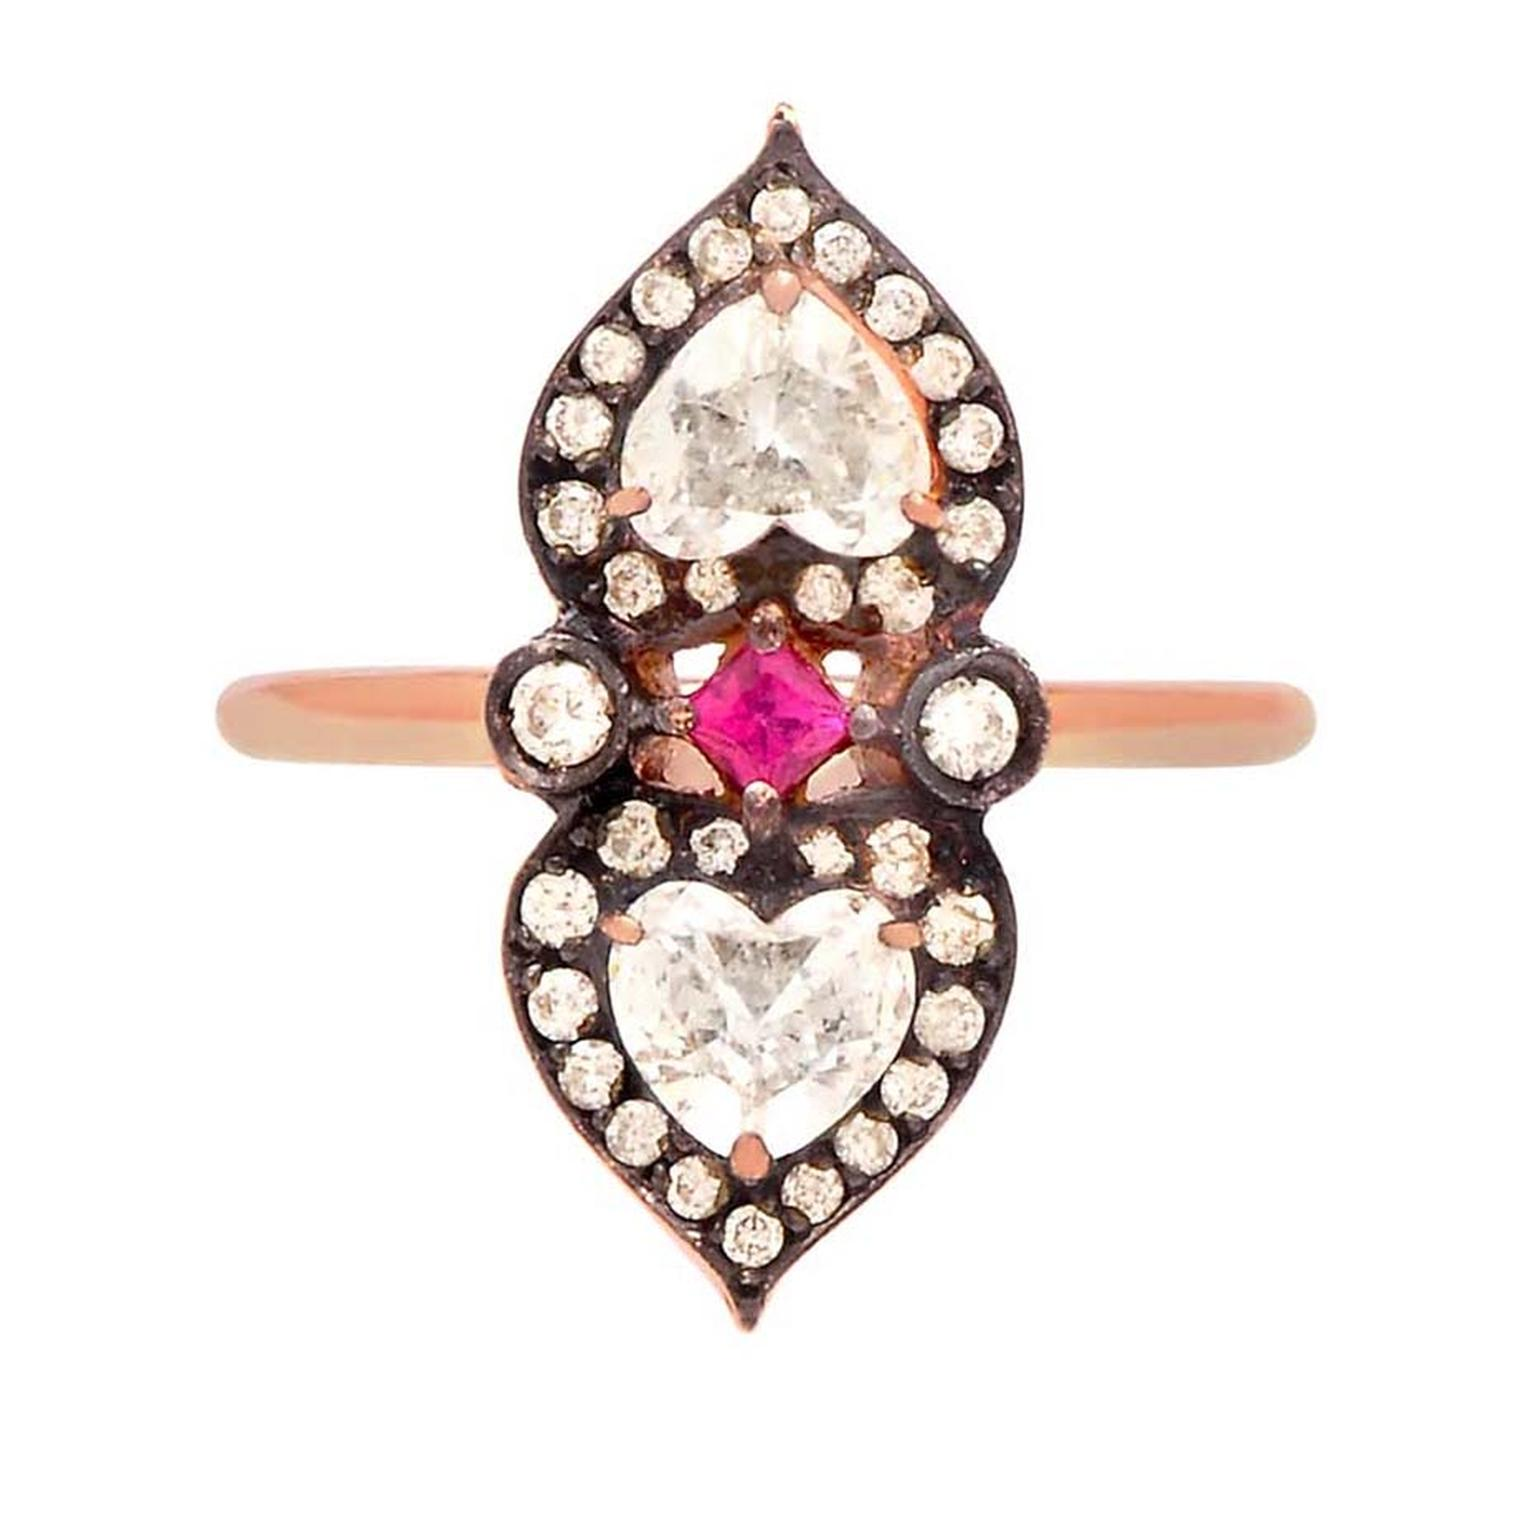 Sabine G's unusual heart-shaped diamond, ruby and rose gold ring from the Relic collection. This handmade engagement ring features two heart-shaped white diamonds set in heart-shaped, diamond-set, rose gold.